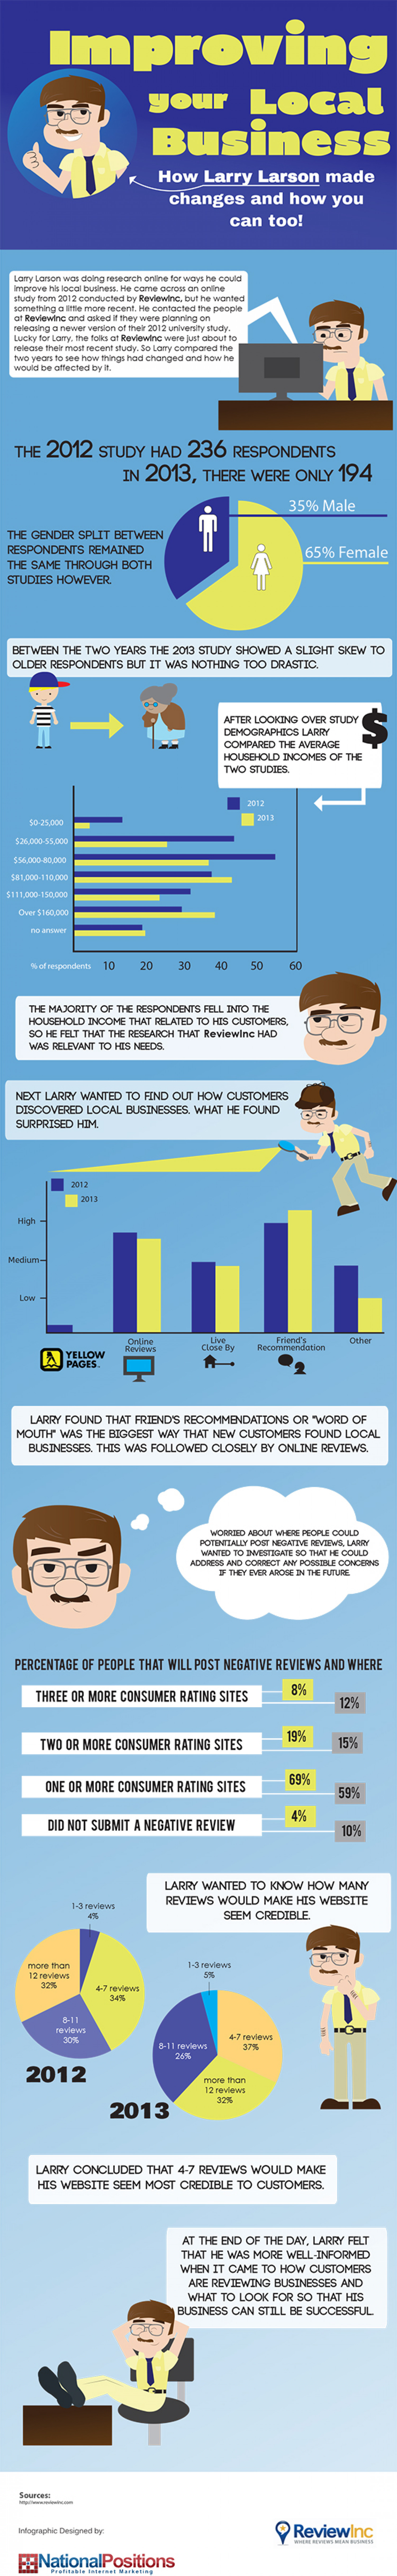 Improving Your Local Business Infographic